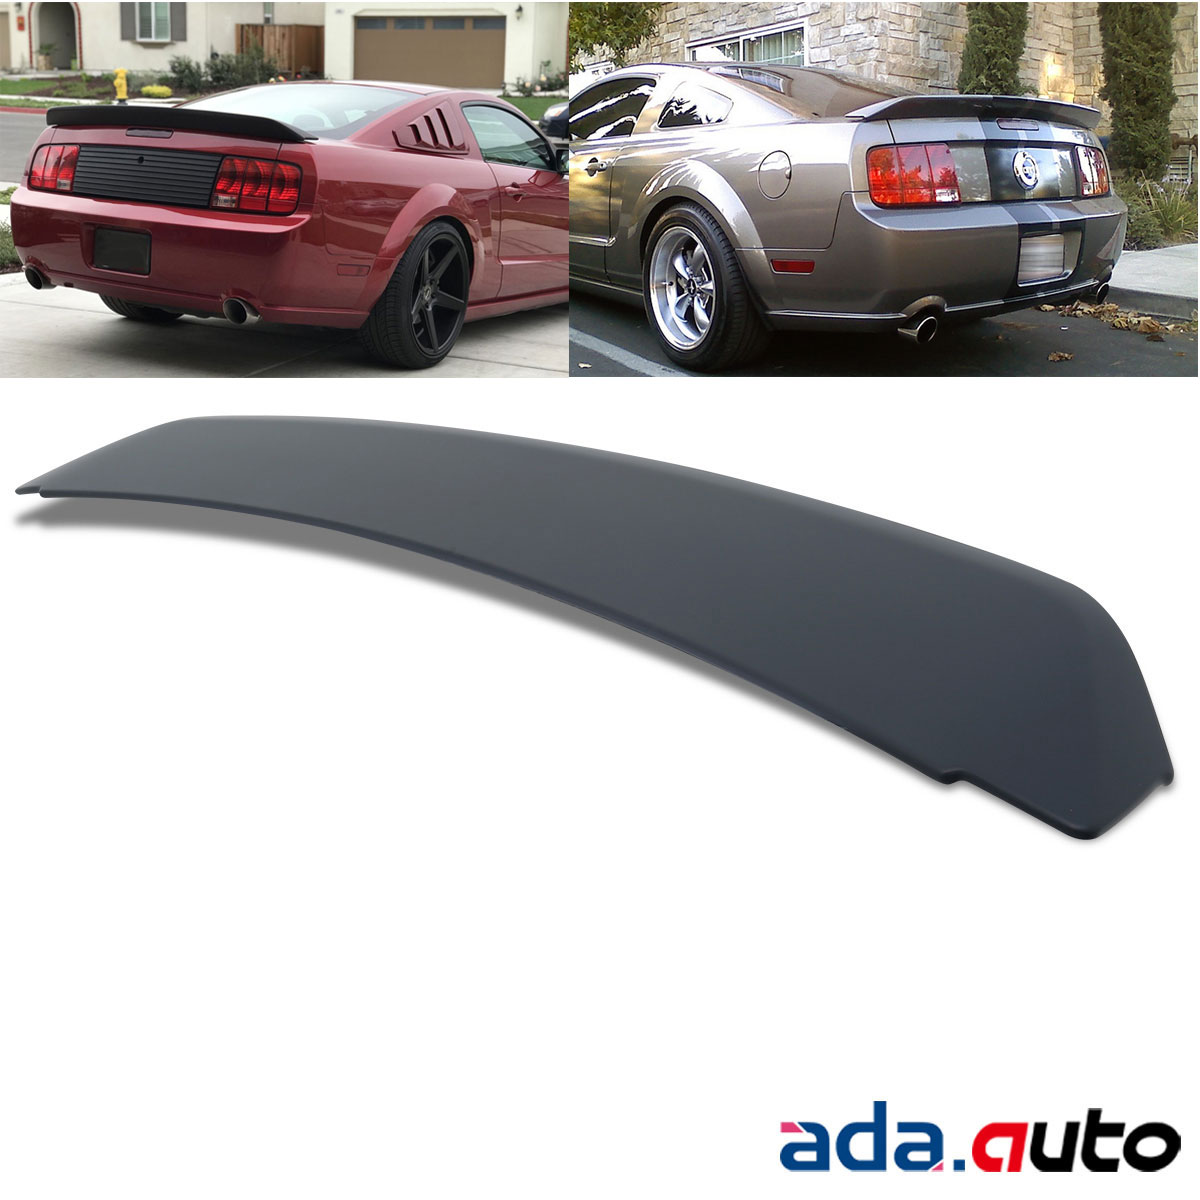 Black Ducktail Style Rear Trunk Spoiler Wing for 2005-2009 Ford Mustang GT500